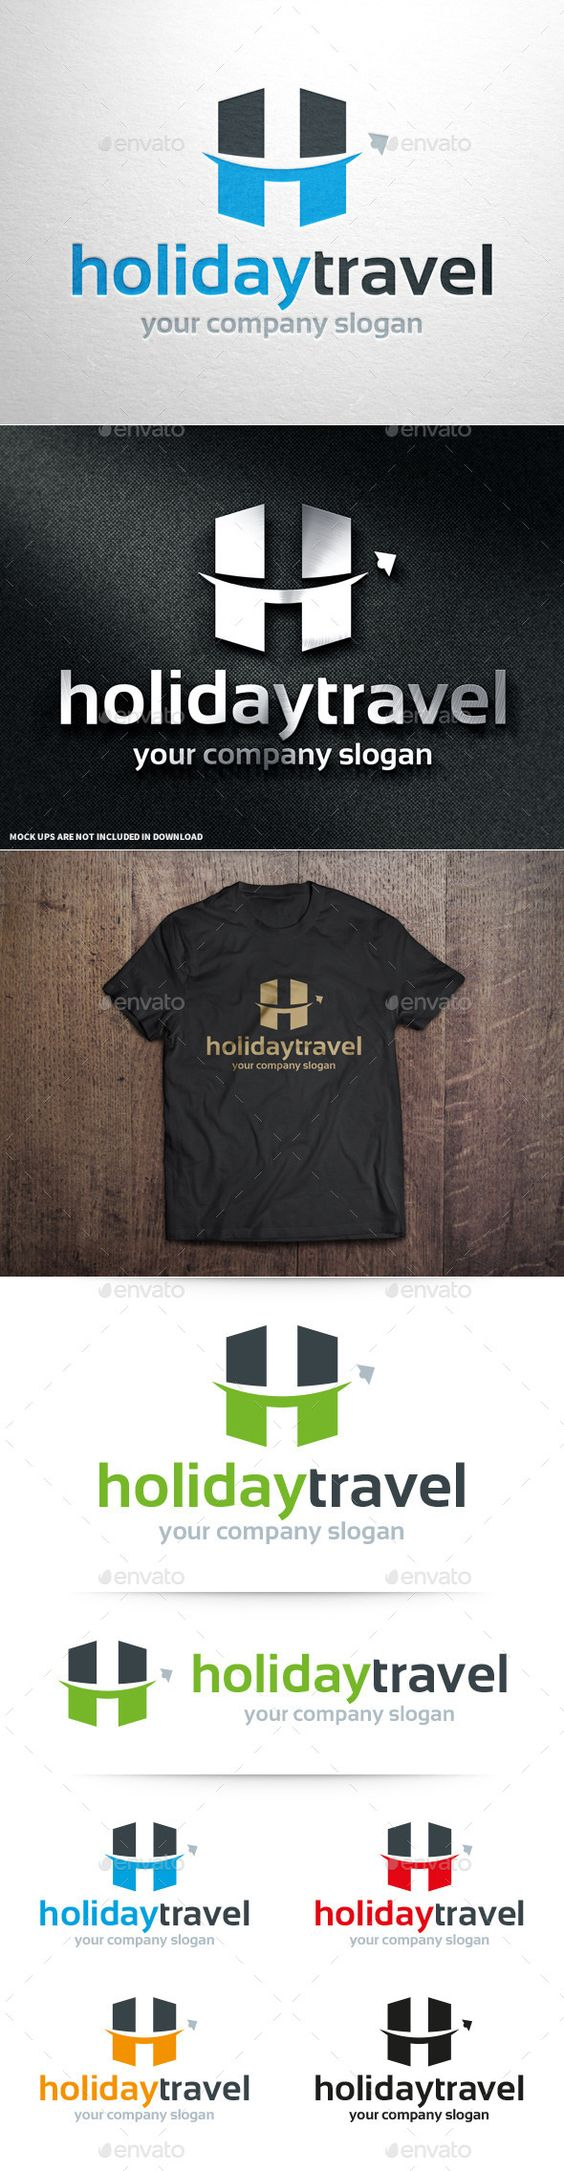 Security letters logo shirt clipart clip download Holiday Travel - Letter H Logo | Resorts, Branding and Inspiration clip download